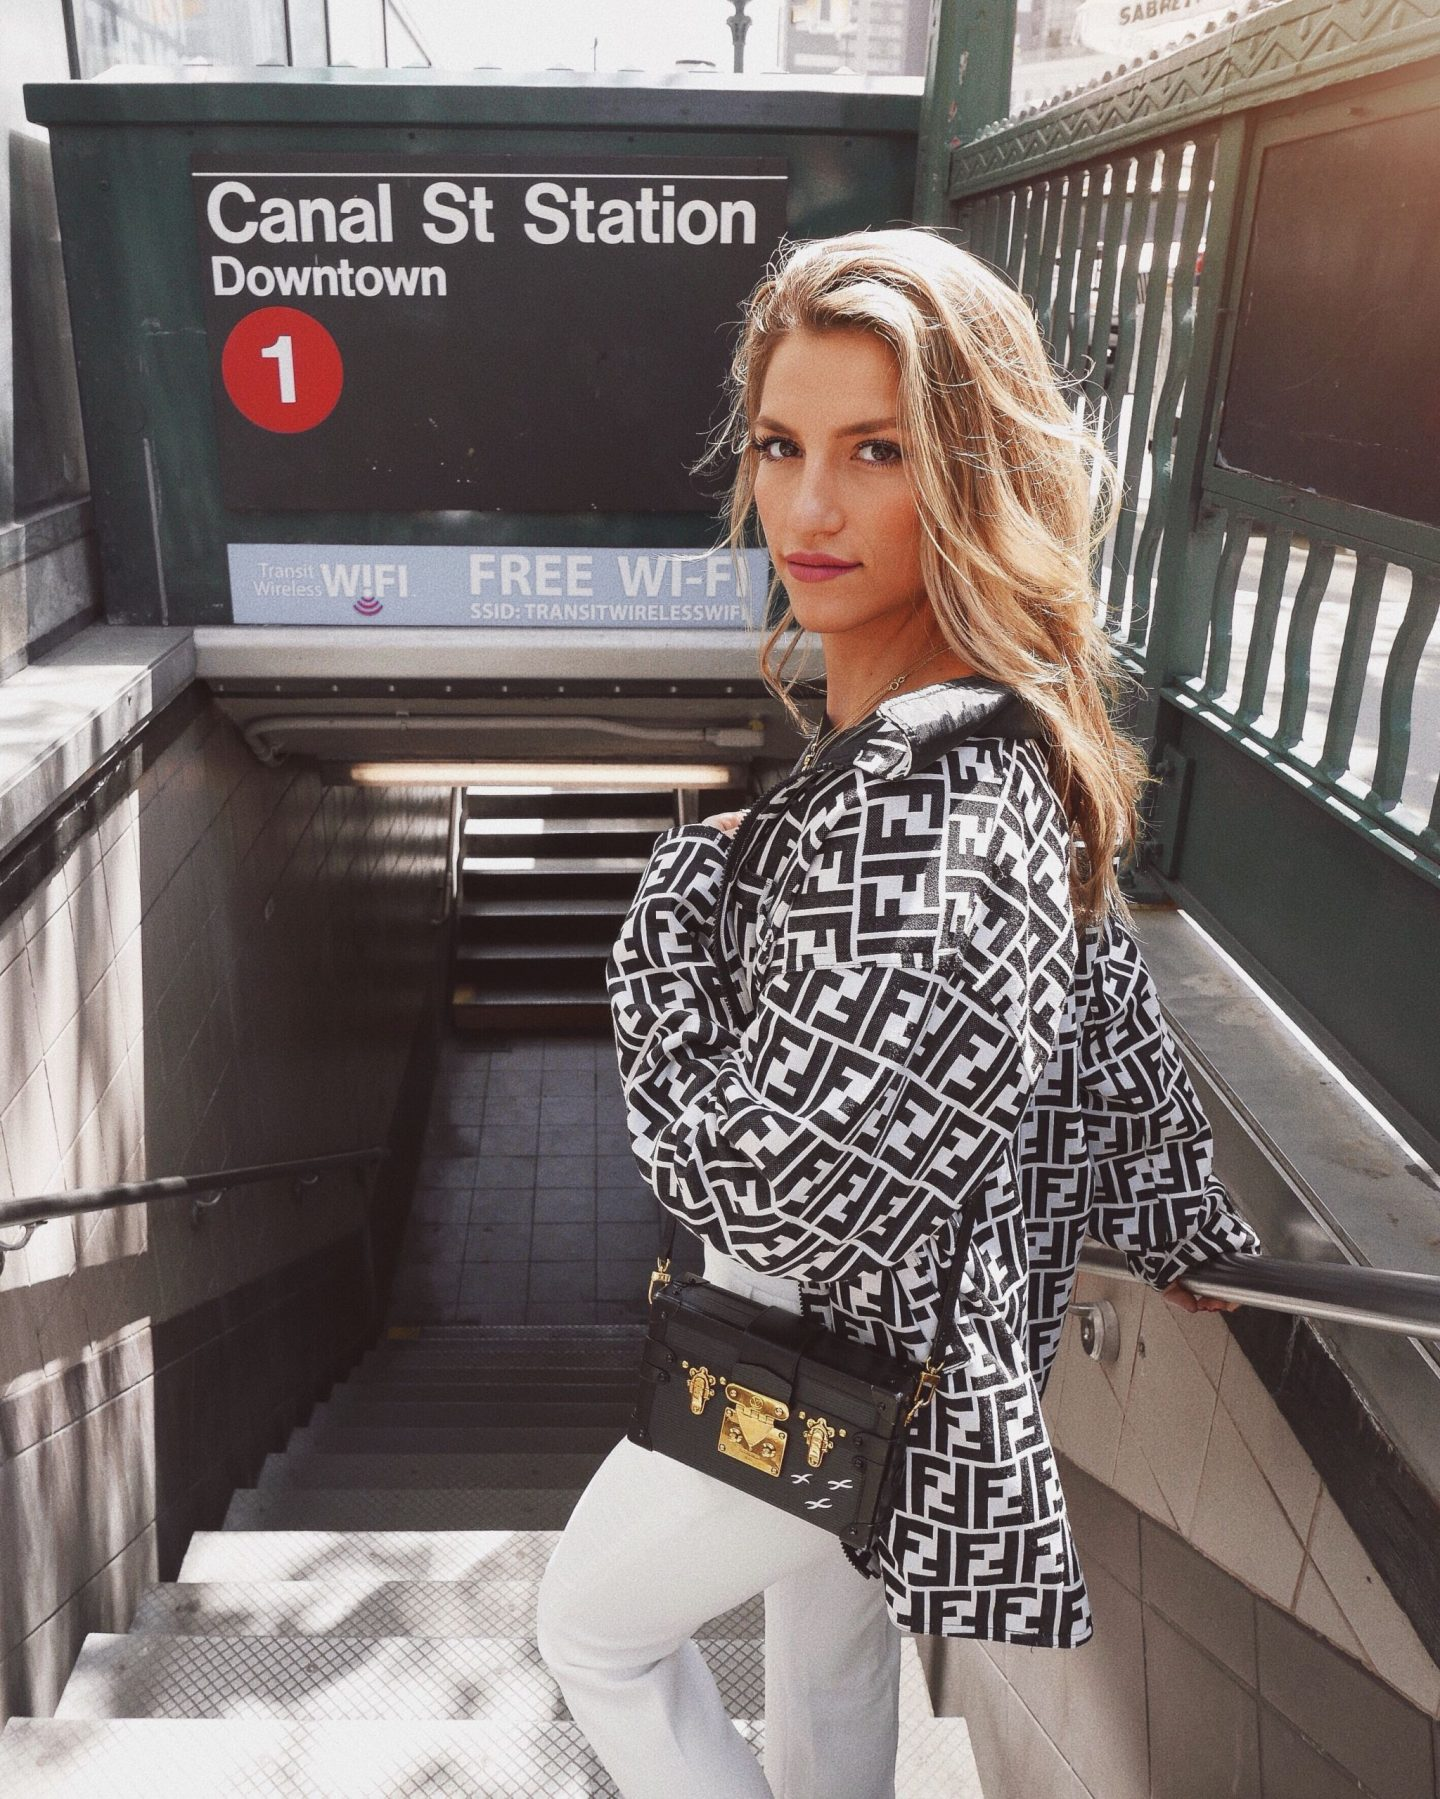 Cassandra DiMicco, Cass DiMicco, Dressed For Dreams, NYC, New York City, New York, Street Style NYC, Street Style 2018, NYC Street Style Street Style Outfits, 2018 Trends, NYC Fashion Blogger, vintage outfit, vintage jacket, vintage fendi, fendi jacket, Louis Vuitton petite Malle bag